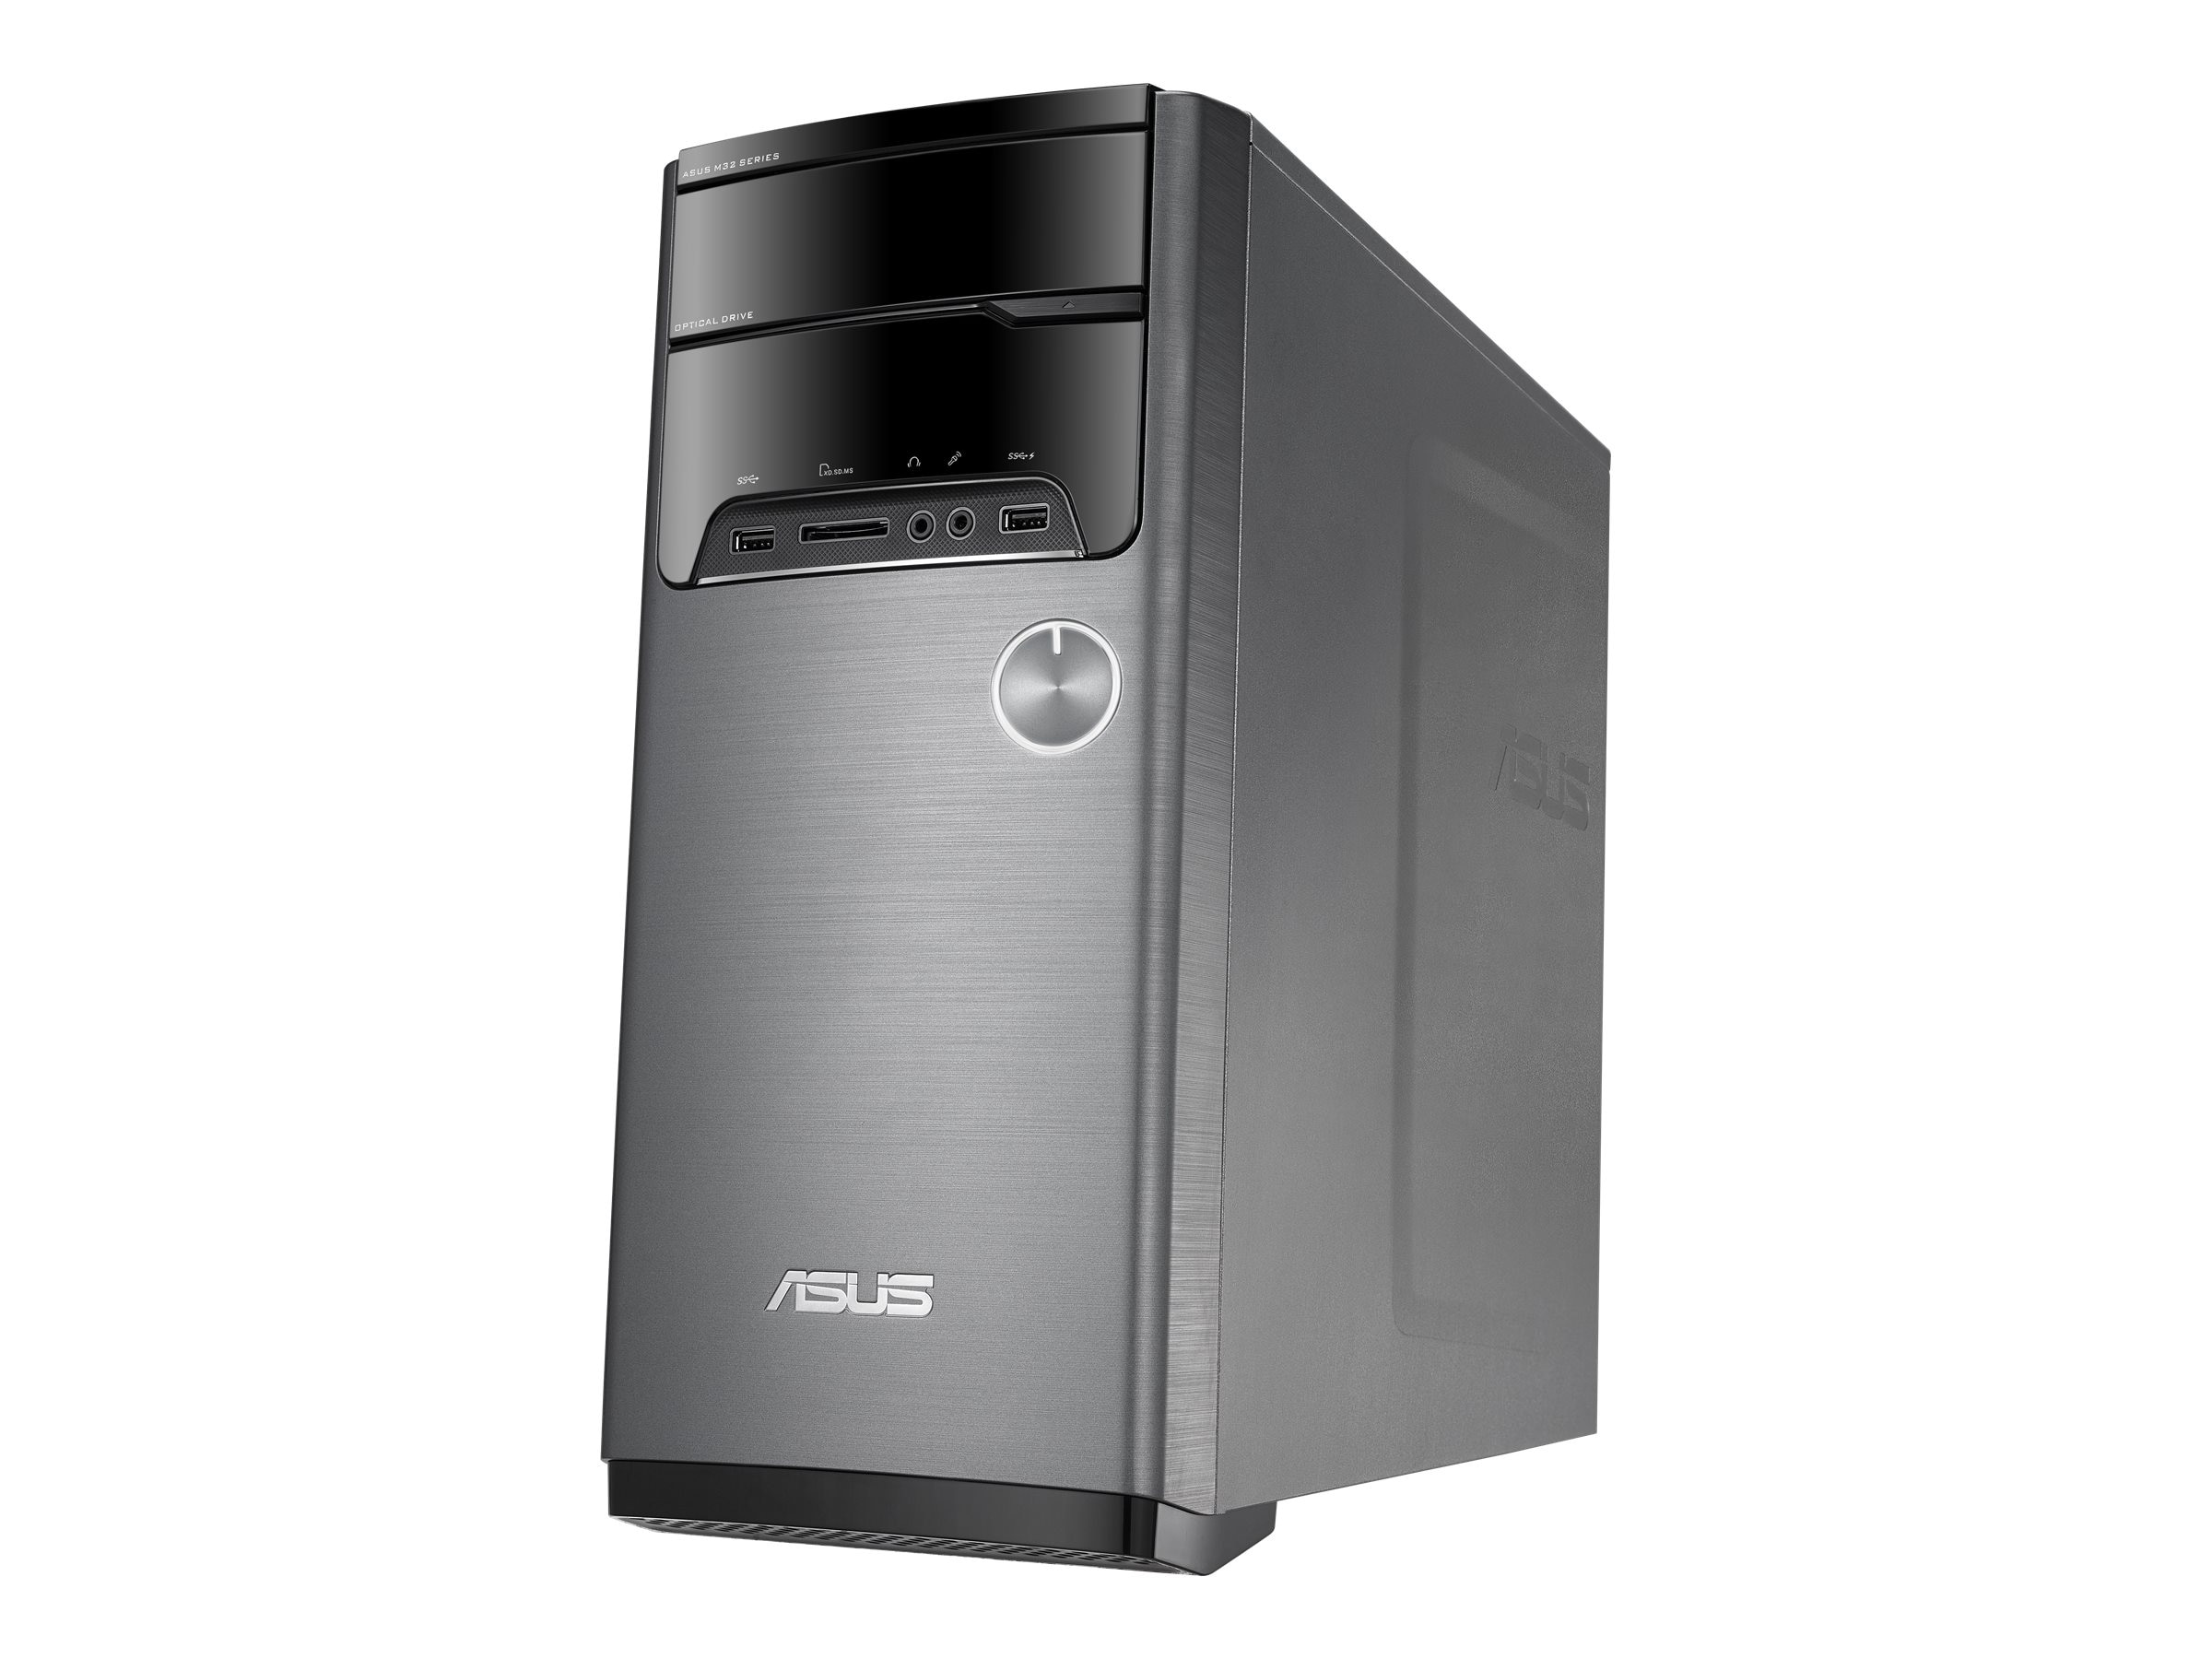 Asus Desktop PC Core i5-4460 12GB 2TB